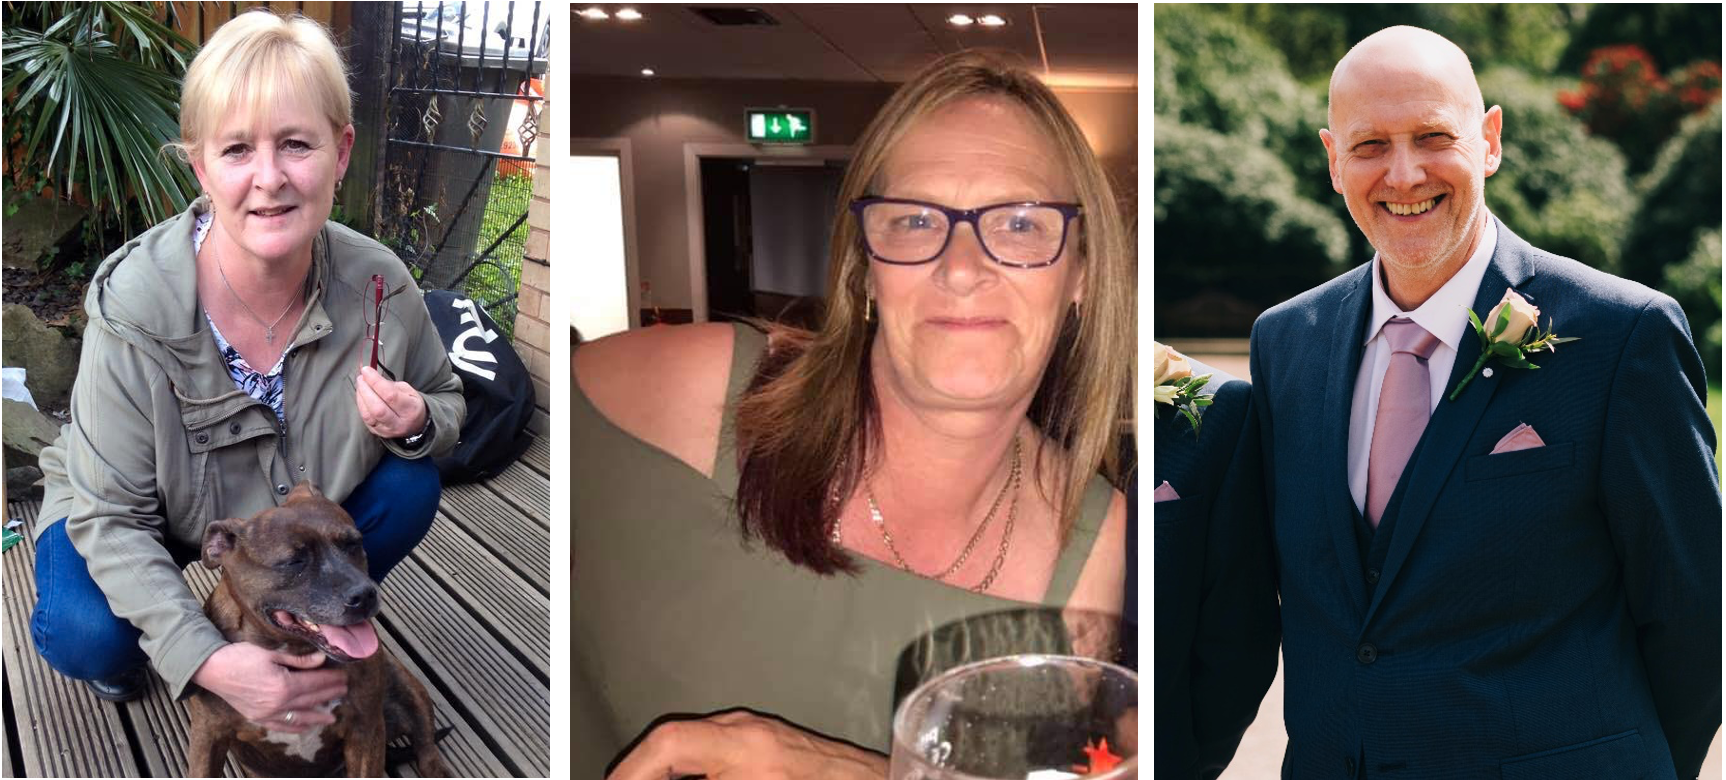 Above: The Loxleys Ladies undertook the challenge in memory of Kath Rowley (left) and Craig Zelly (right), and in support of Angie Bahardo (centre) who is currently bravely fighting her battle against cancer and was the race's guest of honour supporting from the side lines.